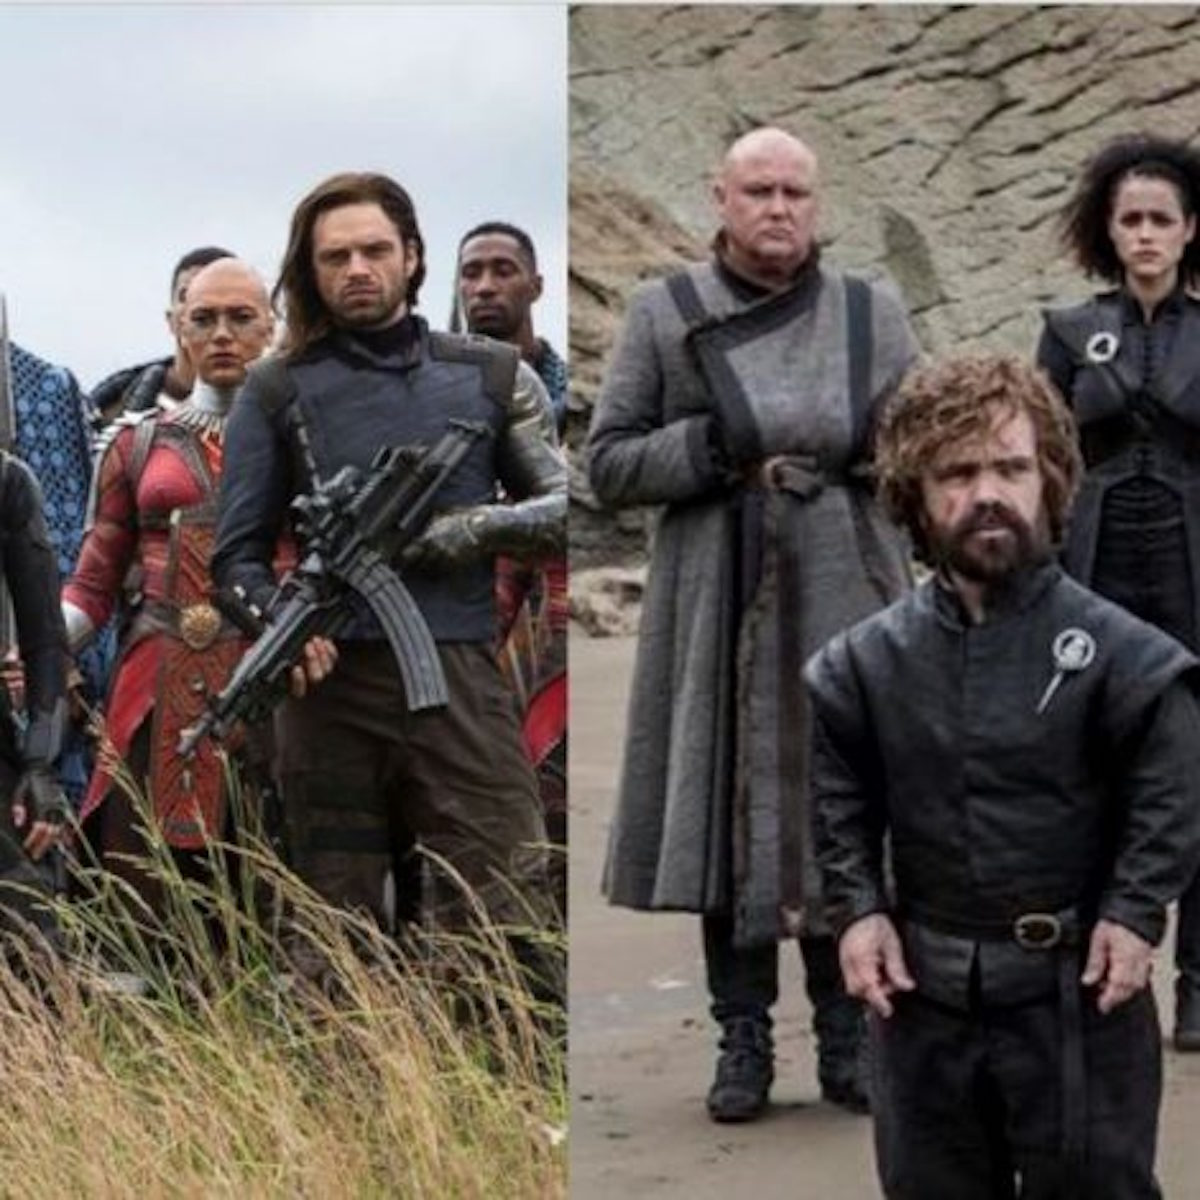 Game of Thrones & Avengers mashup dream teams